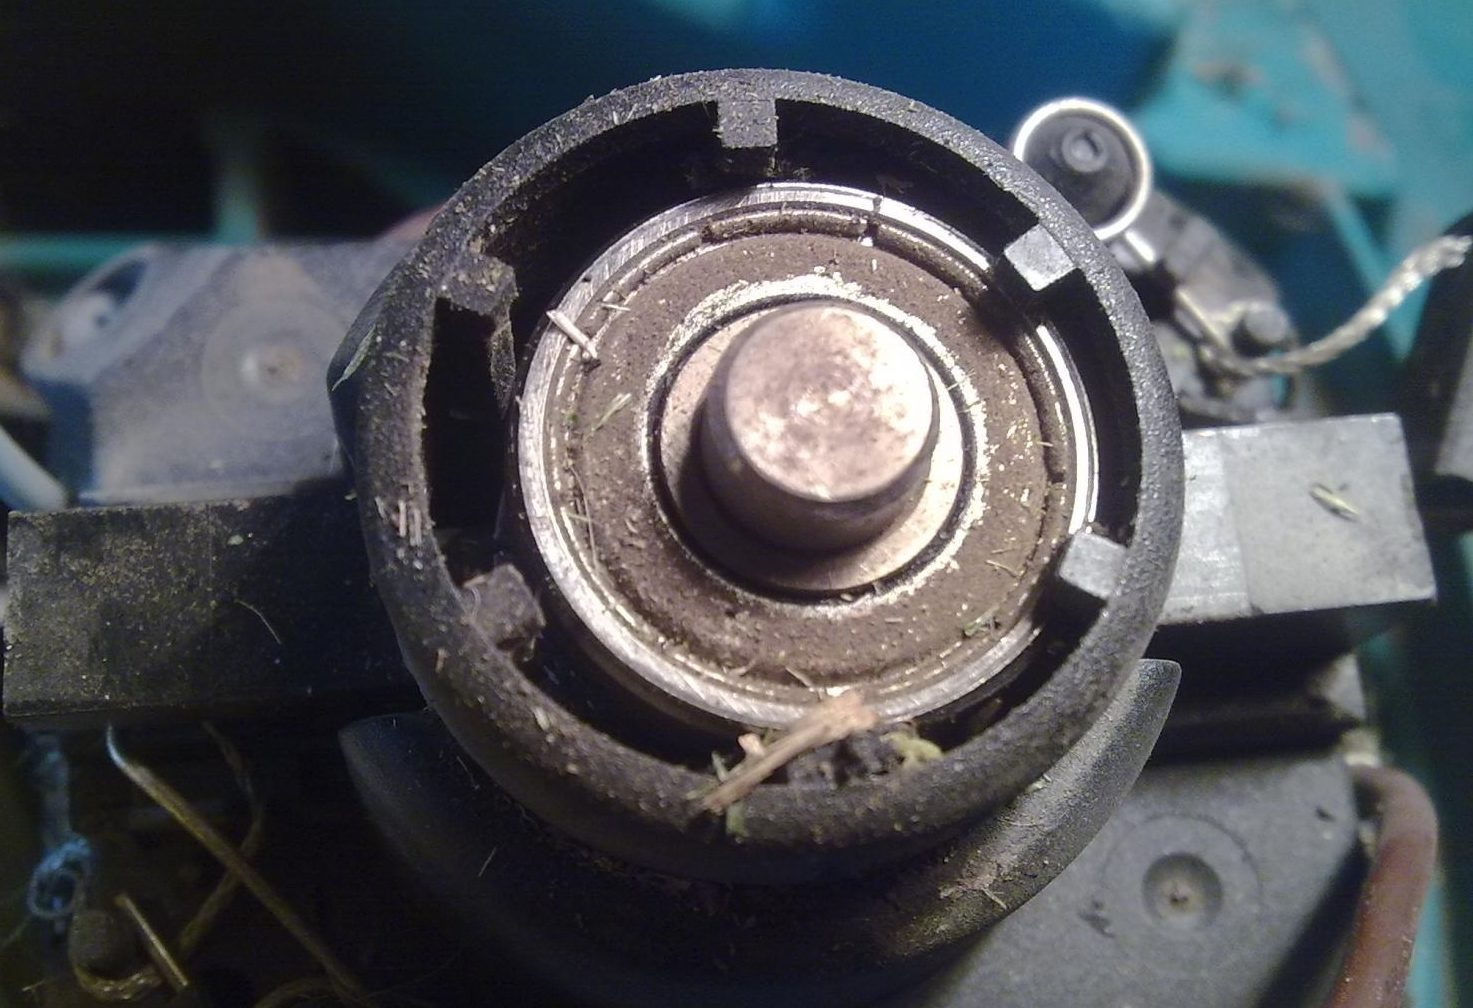 Lawn mower engine repair: Repair of electric and gasoline lawn mowers with your own hands